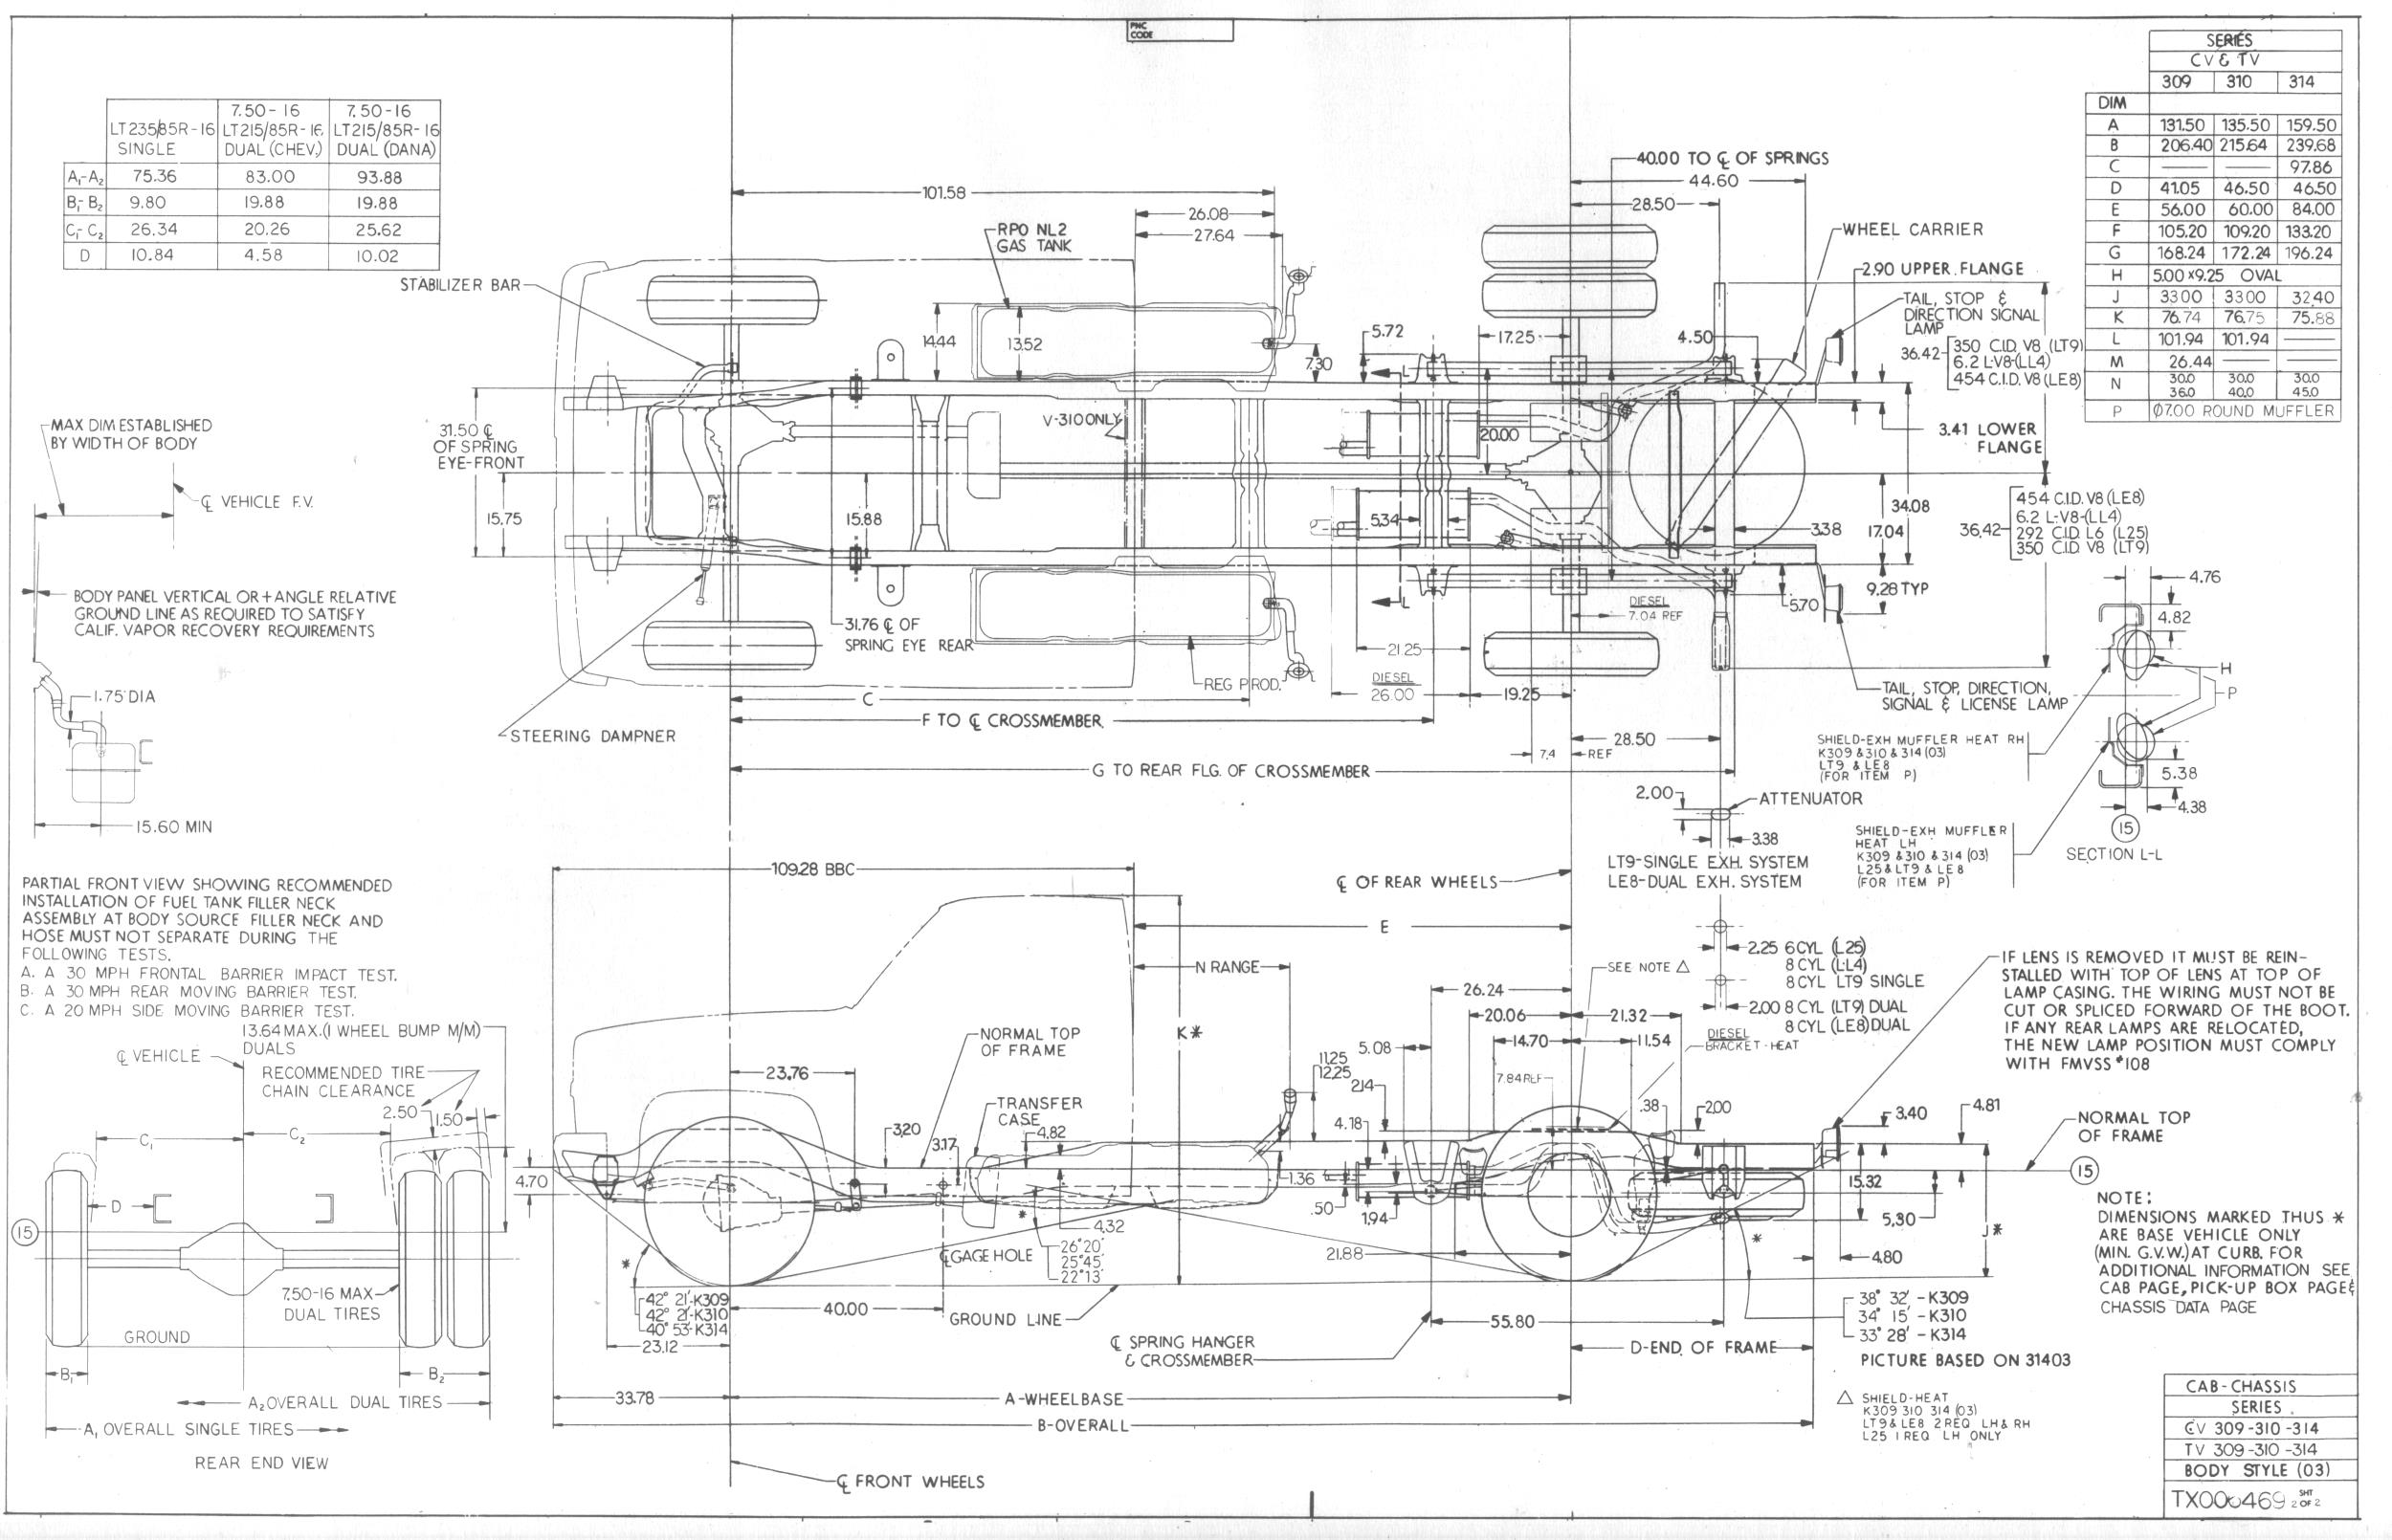 Mge Trader Fs 1958 Morris Minor also 1950 Chevrolet Wiring Diagram in addition 95 Ford Aerostar Wiring Diagrams as well Wiring Diagram For 1940 Ford Headlight Switch additionally 1934 Ford Wiring Diagram. on 1937 ford wiring free diagrams pictures